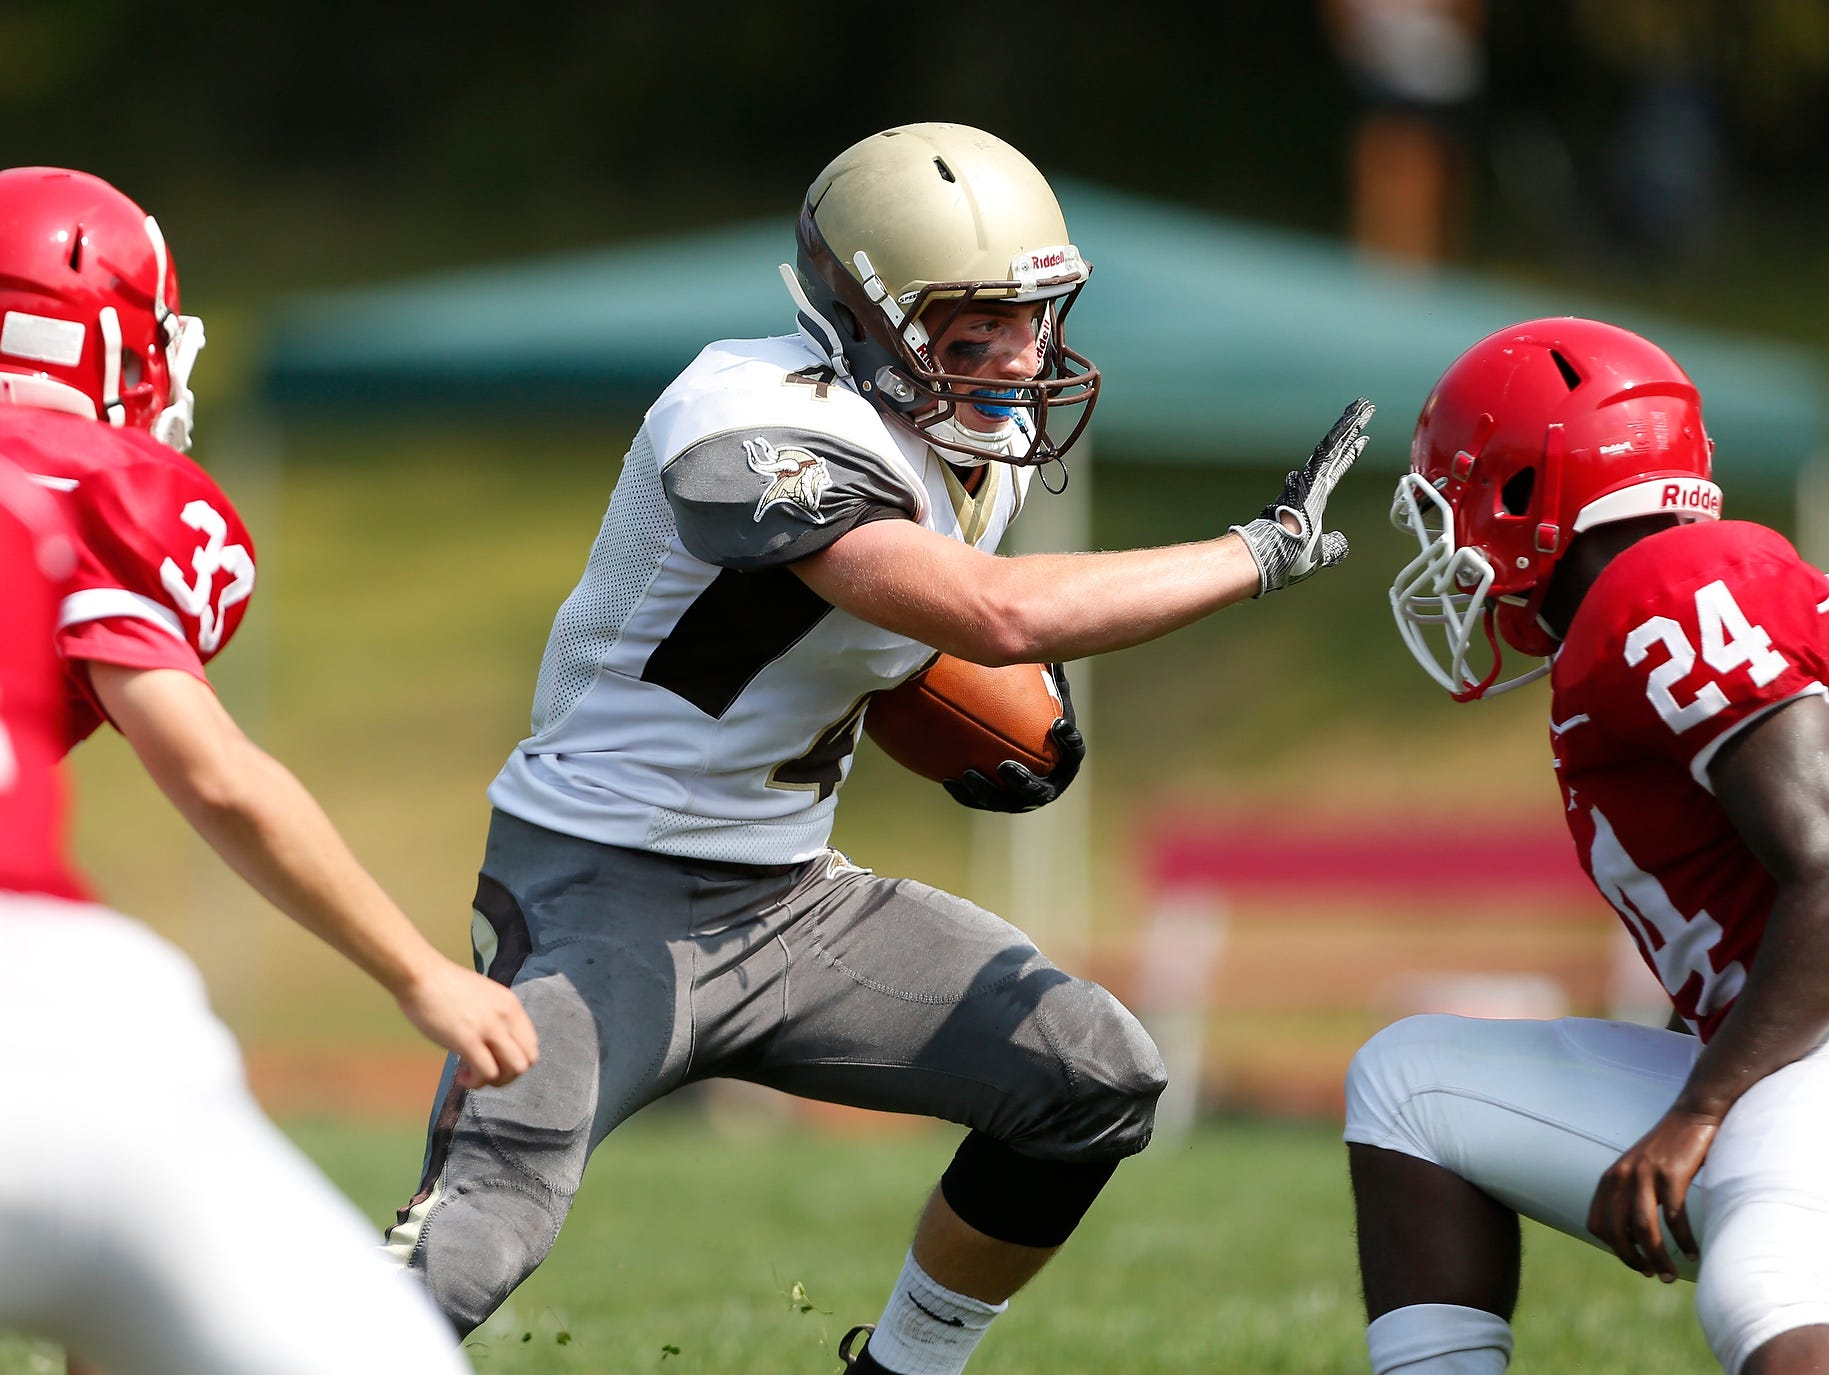 Clarkstown South's Kyle Samuels (4) looks for a hole during football action against North Rockland at North Rockland High School in Thiells on Saturday, September 10, 2016. The game second half is postponed due to heat. Clarkstown South is up at the half, 17-0.